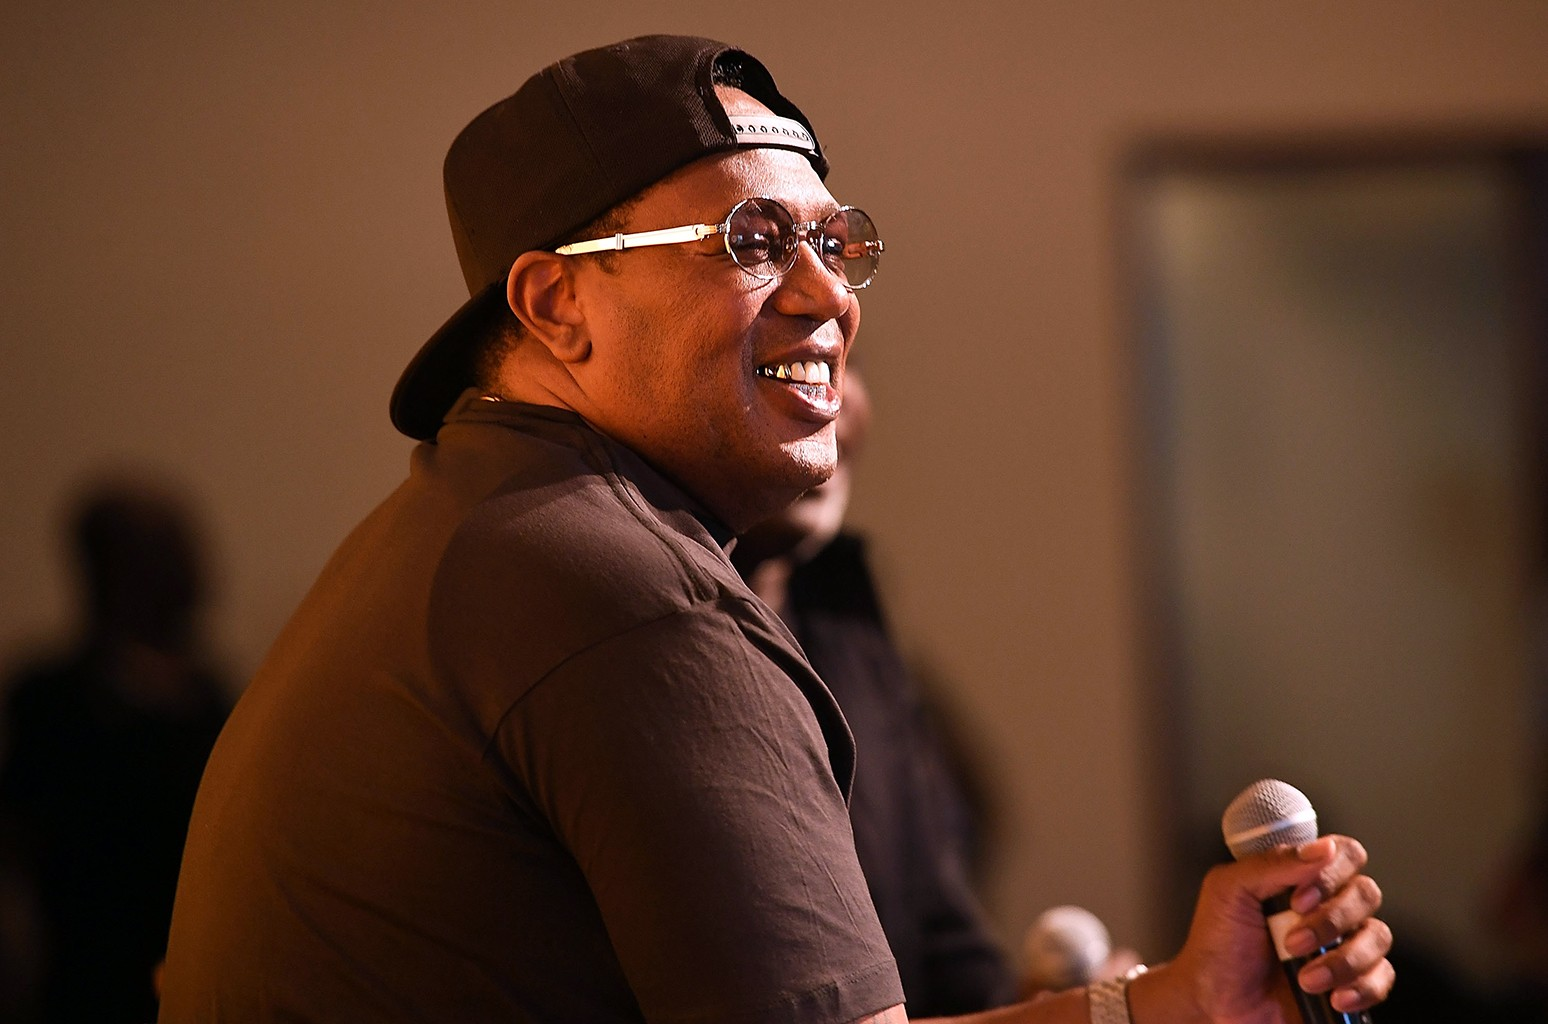 Master P speaks on stage at A3C Festival And Conference